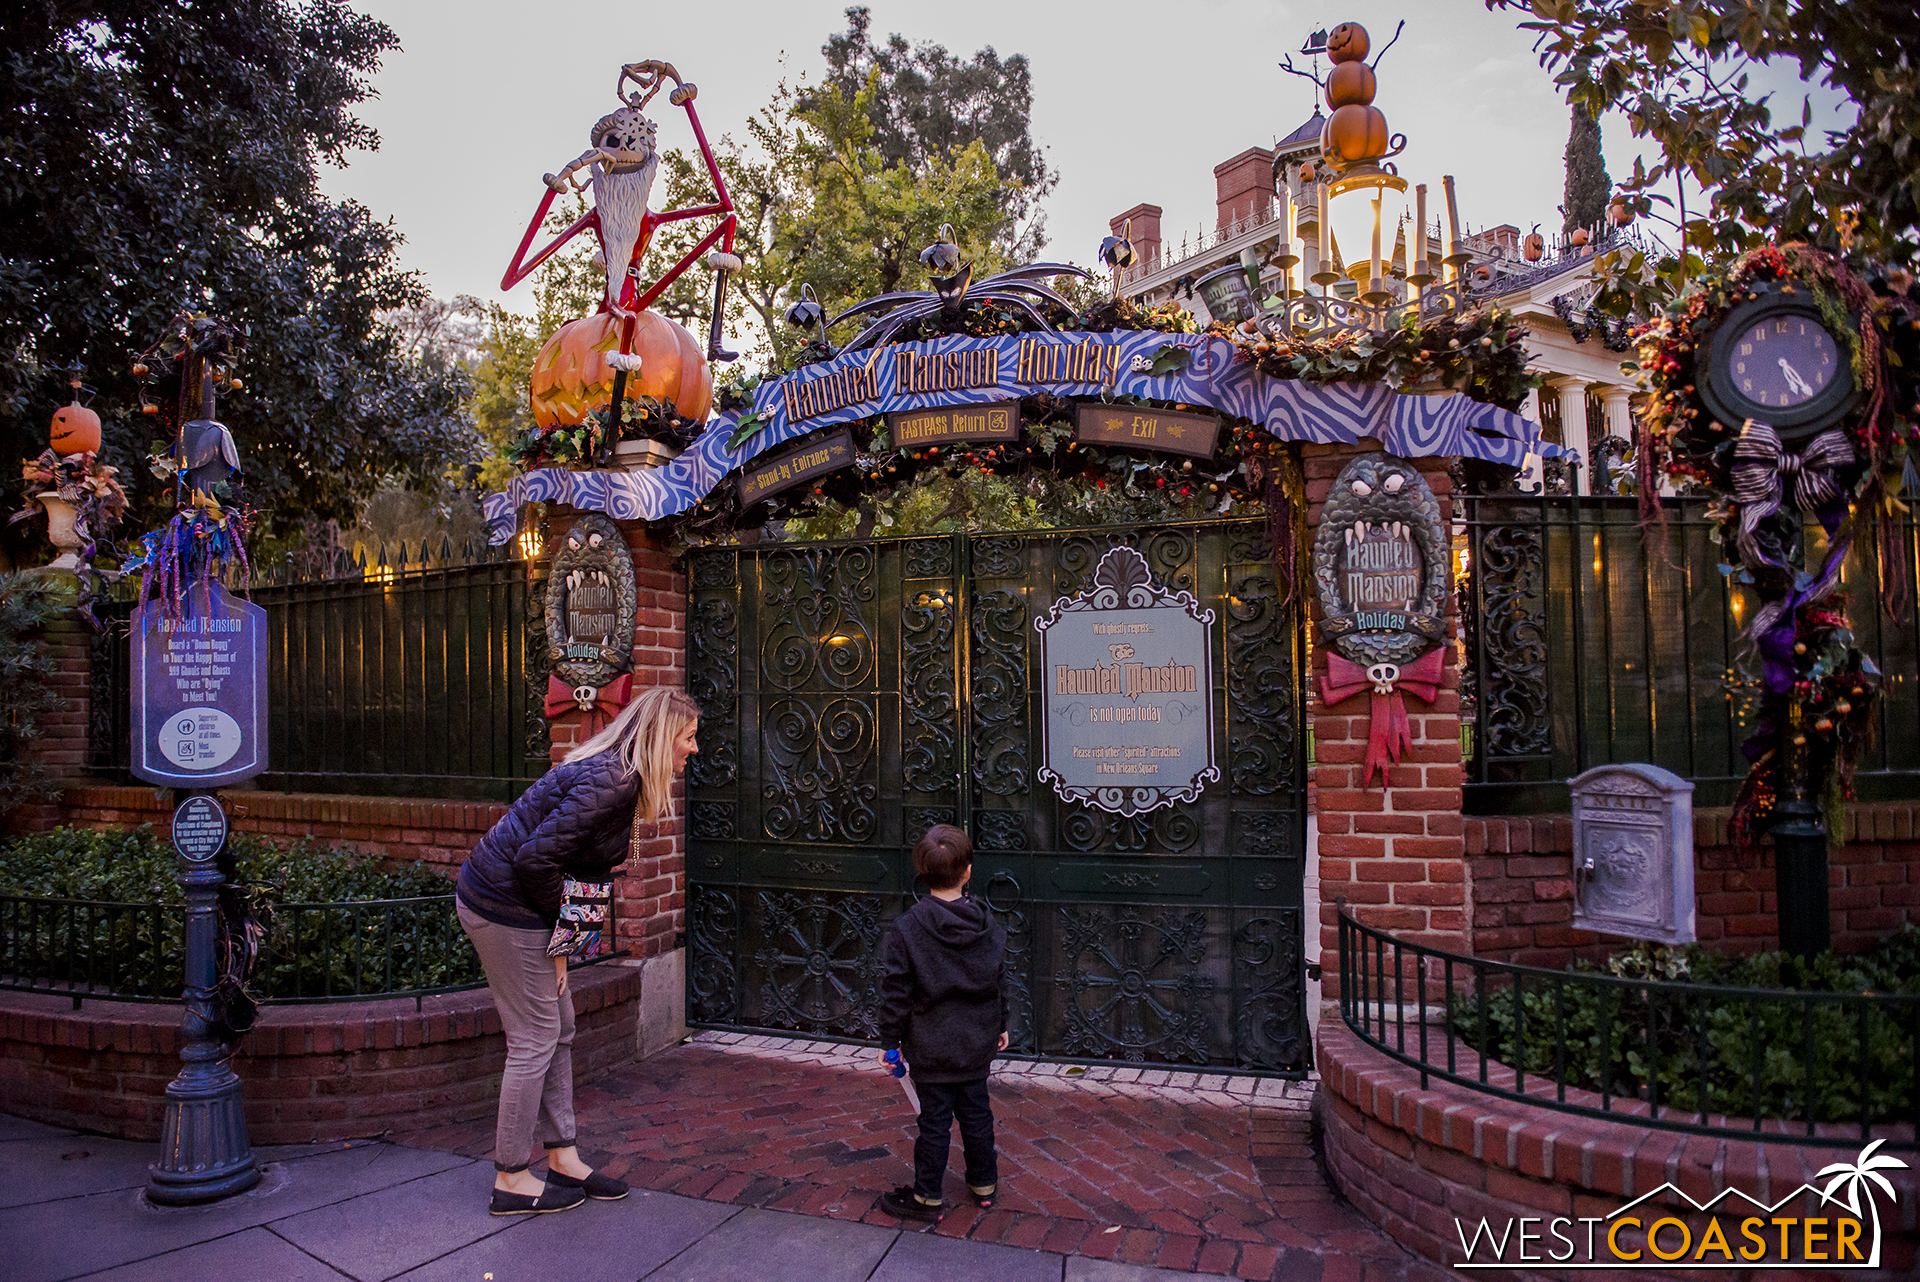 The Haunted Mansion is now closed. If you want rides, well then that blows.